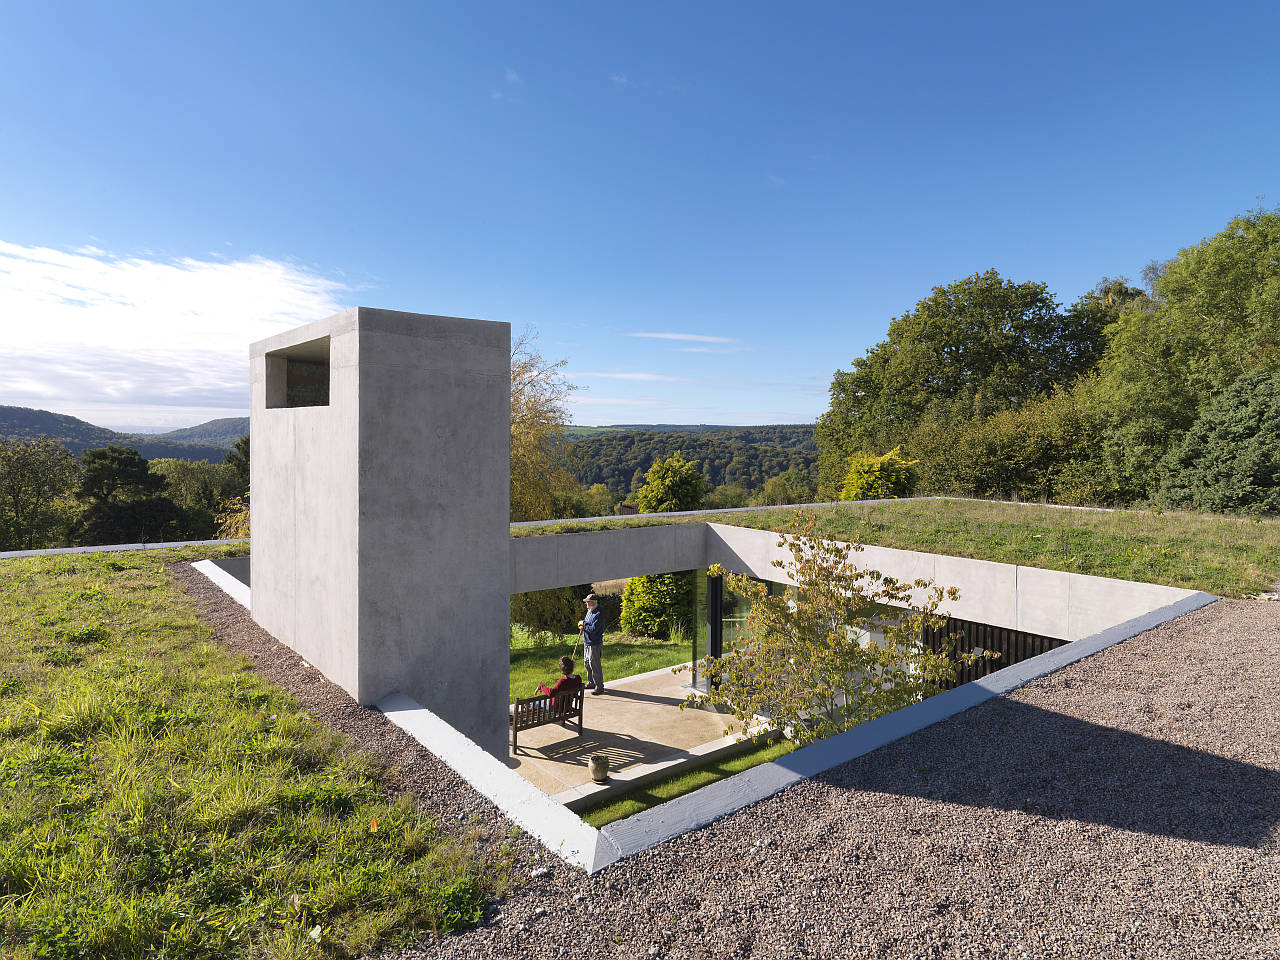 Outhouse by Loyn & Co. in Forest of Dean, Gloucestershire, England : Photo credit © CHARLES HOSEA